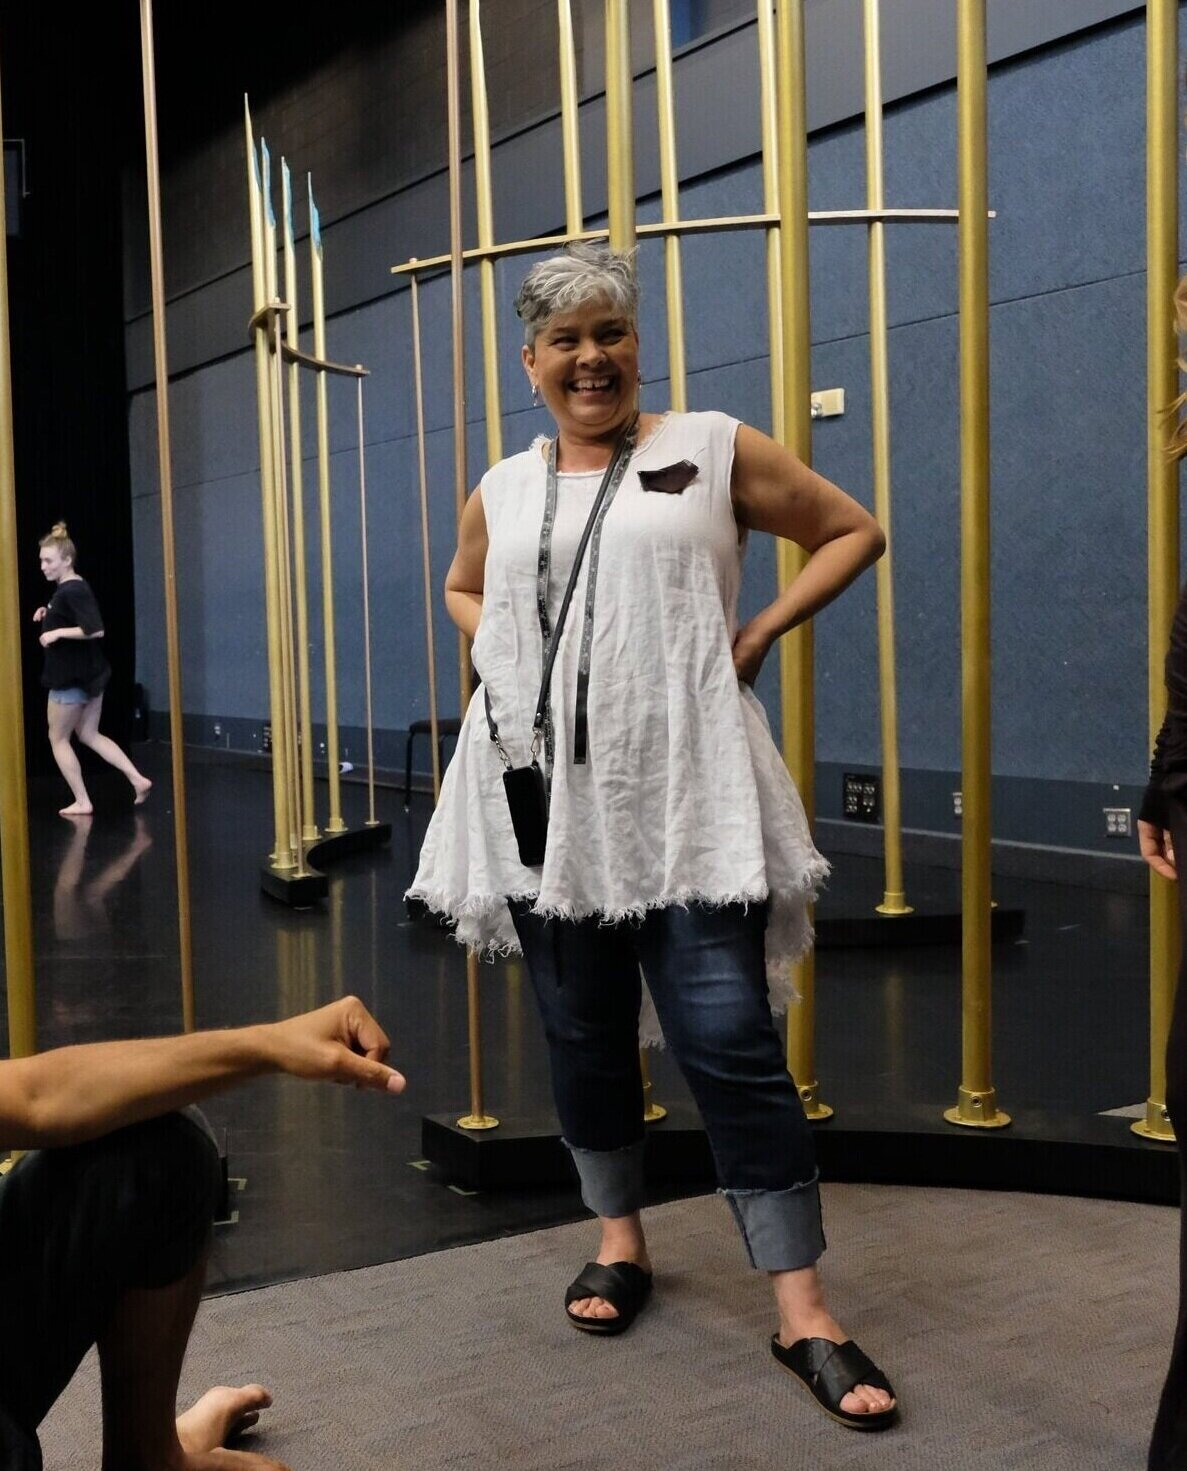 Tamara Cobus (Costume Designer)  has been designing nationally and internationally for theater, dance, and performance artists and personal clients for over thirty years. Her designs have been seen on runways for fashion, bridal and arts festivals. After a long career running her own business, she took the position of costume director for Richmond Ballet and then Atlanta Ballet. She retired from directorship to pursue a new career in film with  Black Panther  being one of her recently credited films.